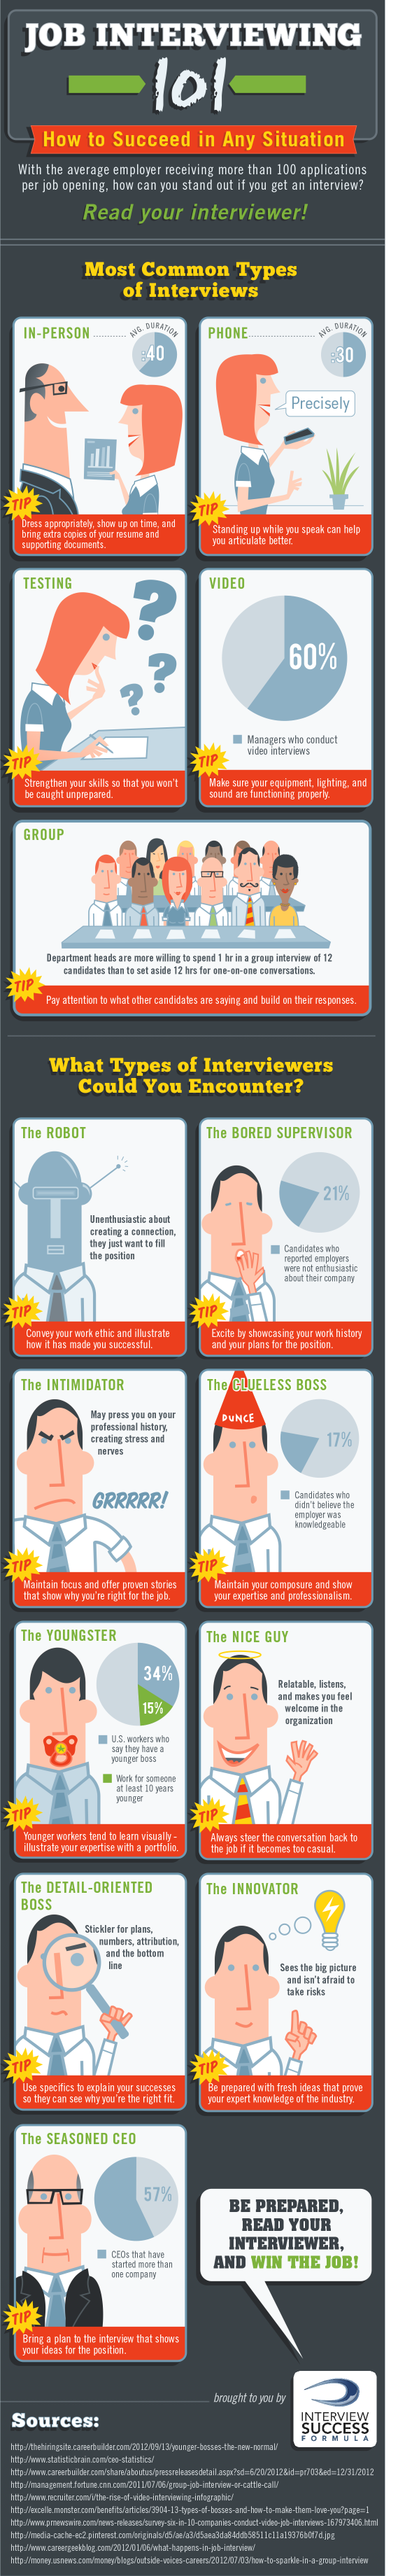 Job Interviewing 101: How to Succeed in Different Situations [INFOGRAPHIC]